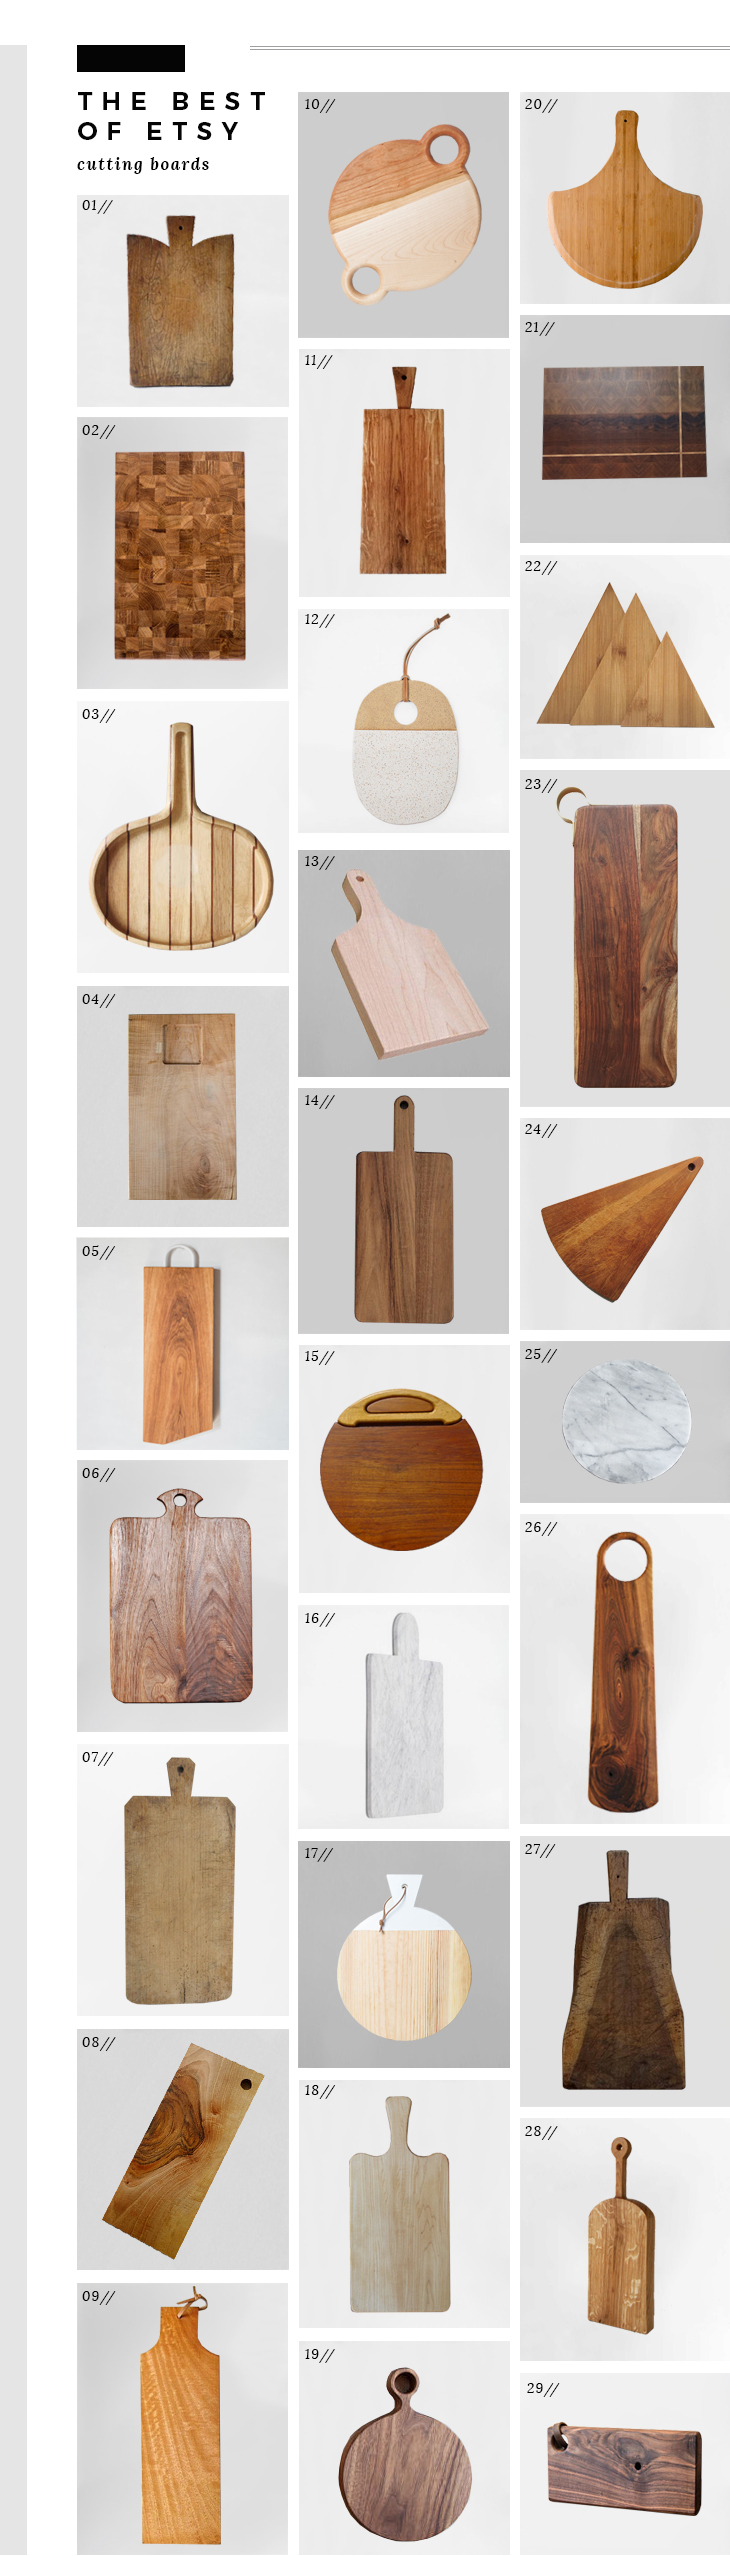 Best of Etsy - Cutting Boards